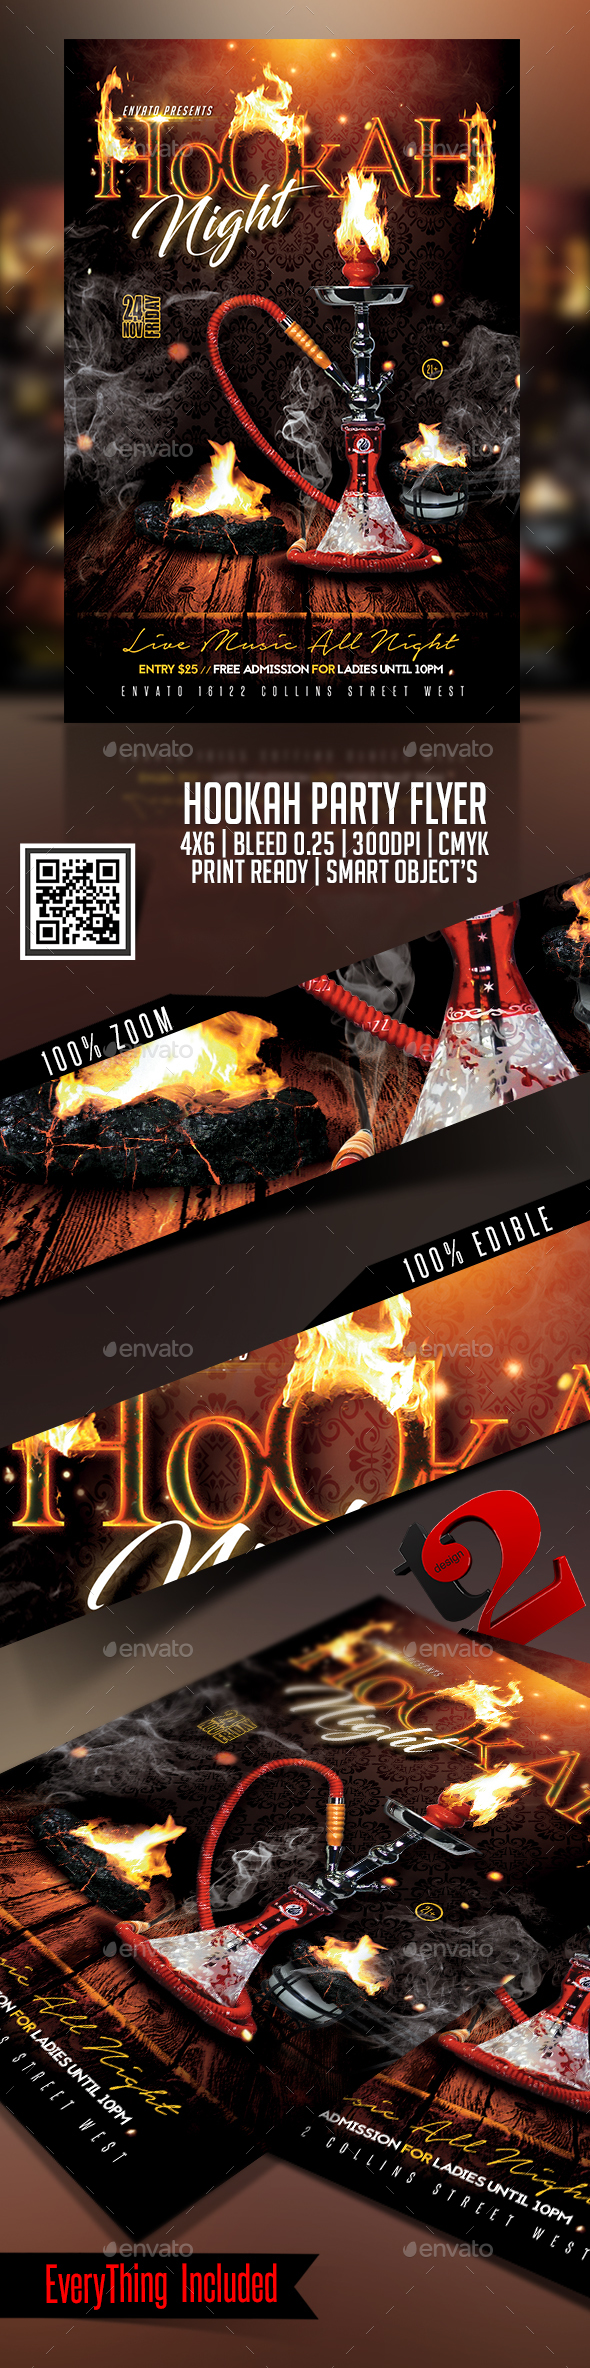 Hookah Party Flyer Template - Clubs & Parties Events